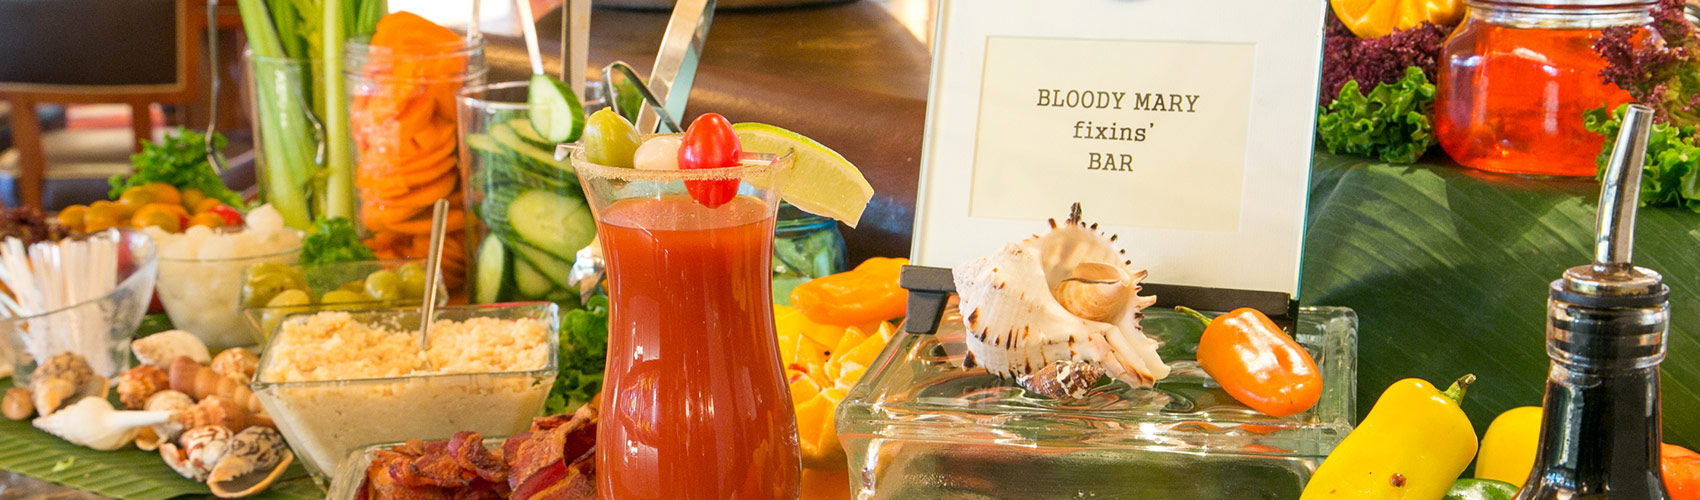 Sunday Brunch Bloody Mary Bar at The Circle at The Breakers